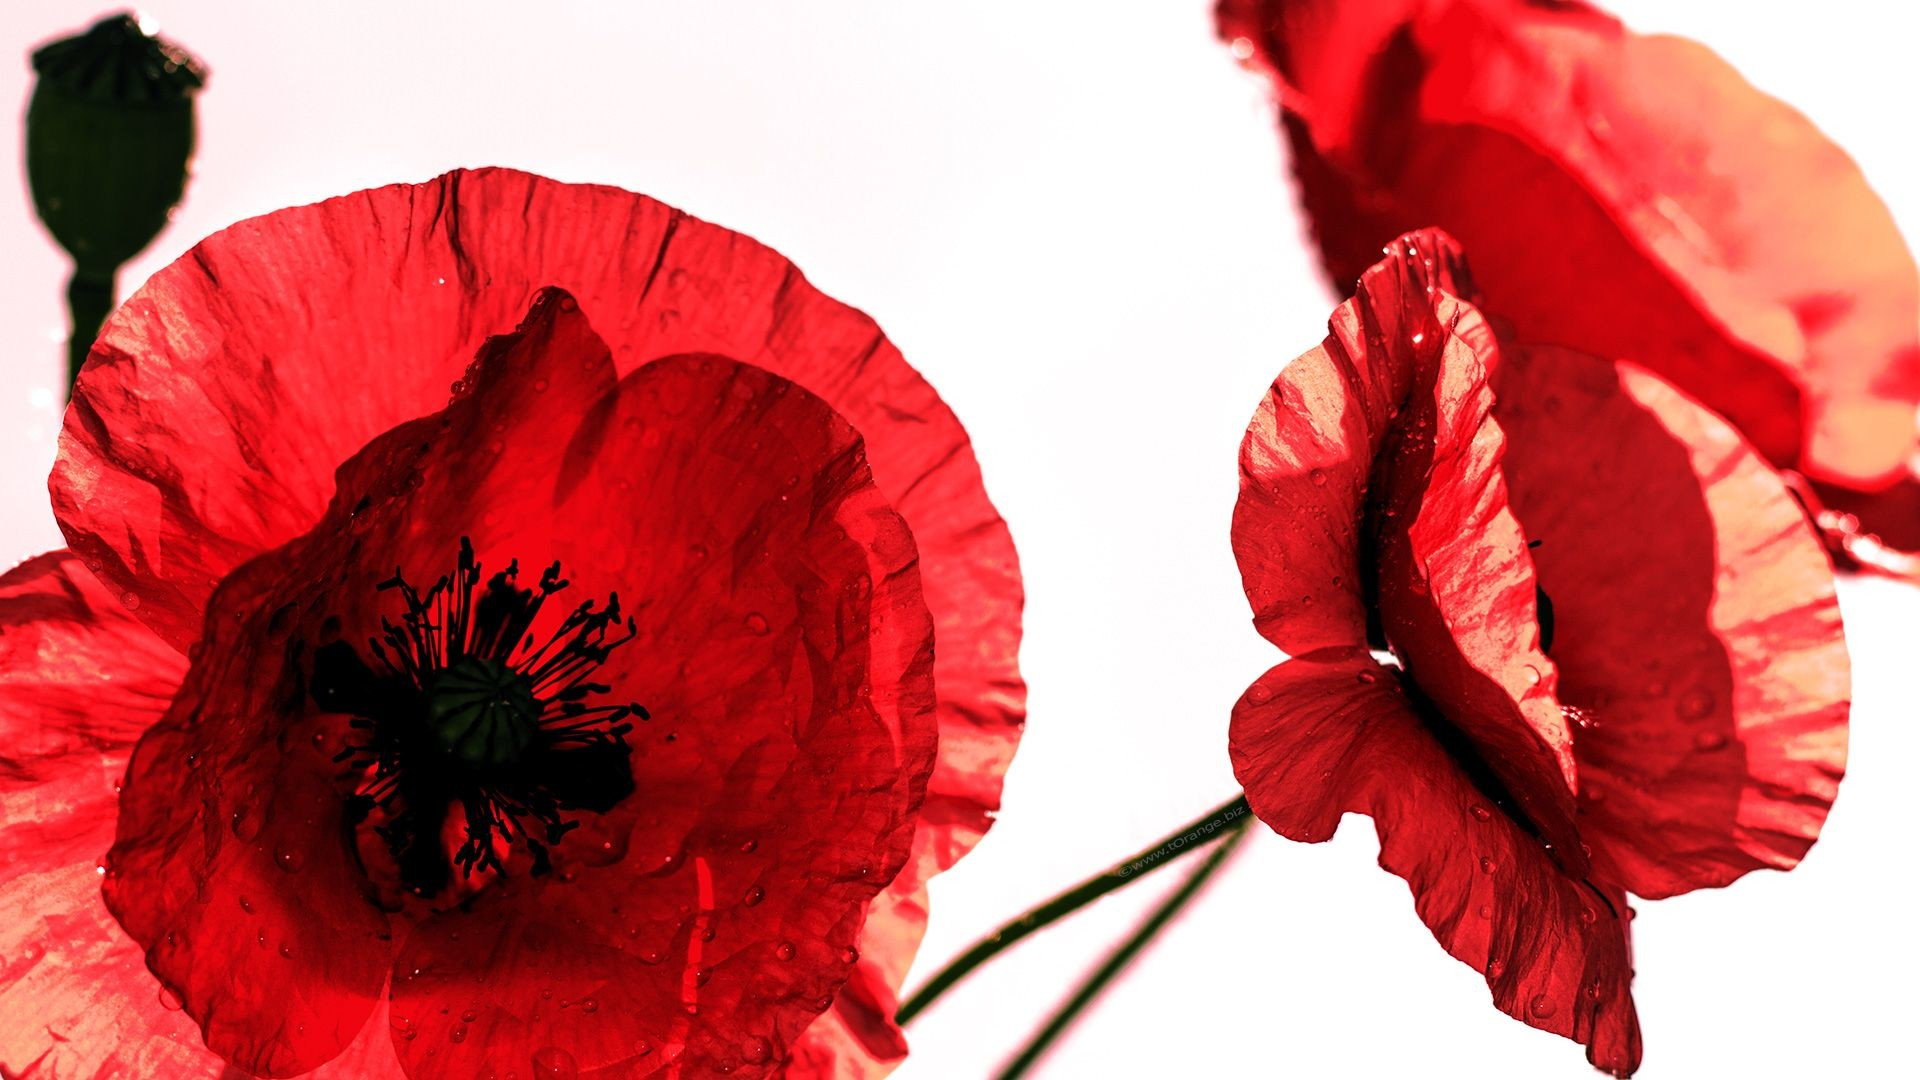 1920x1080 red poppies flower  Desktop Wallpapers for Widescreen #Free # desktop #backgrounds #pictures #flowers #poppies #HD #